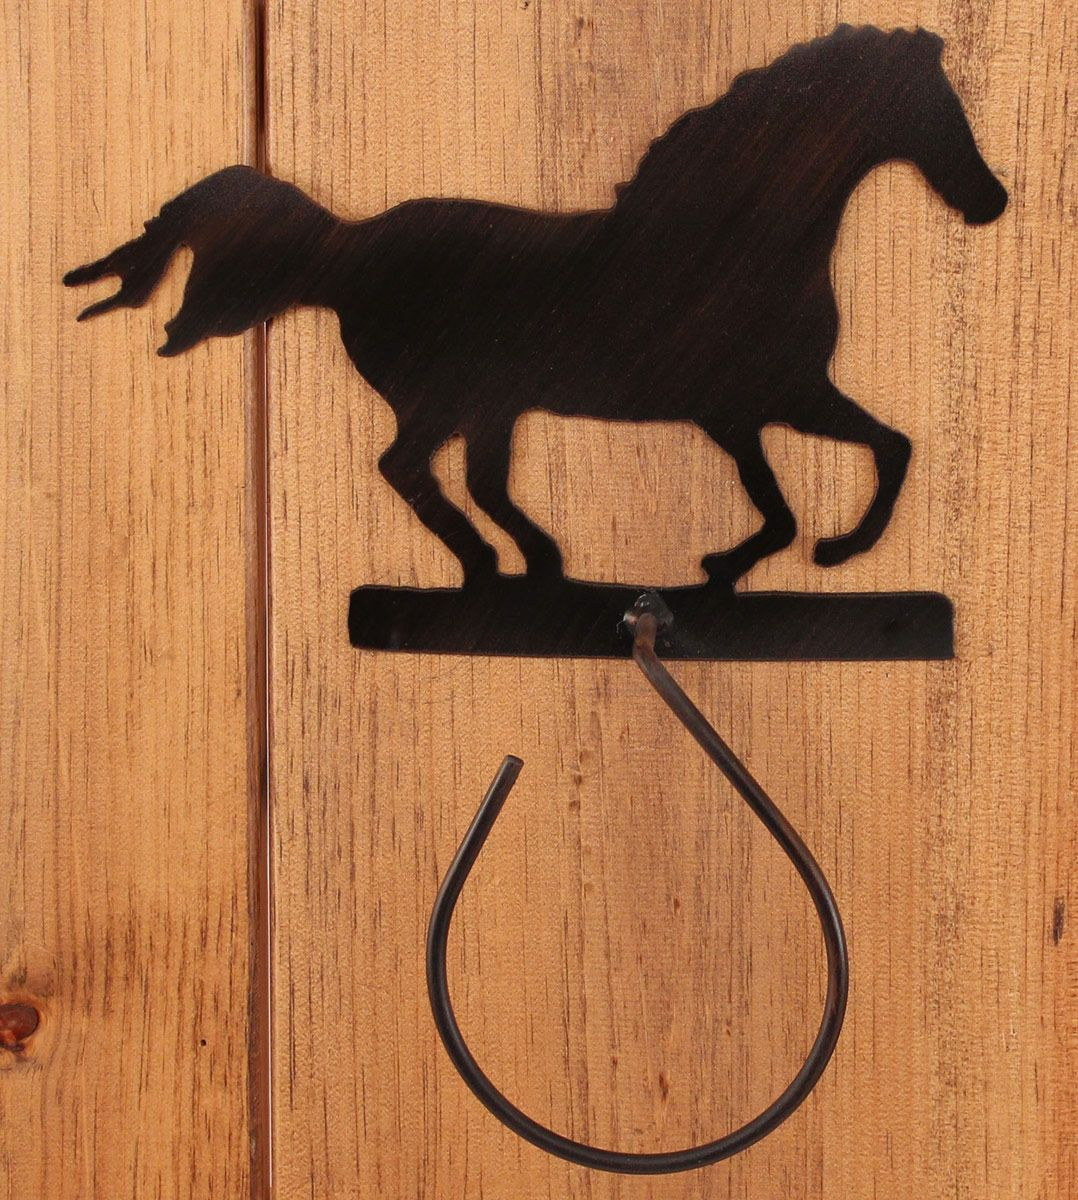 Iron Running Horse Hand Towel Holder